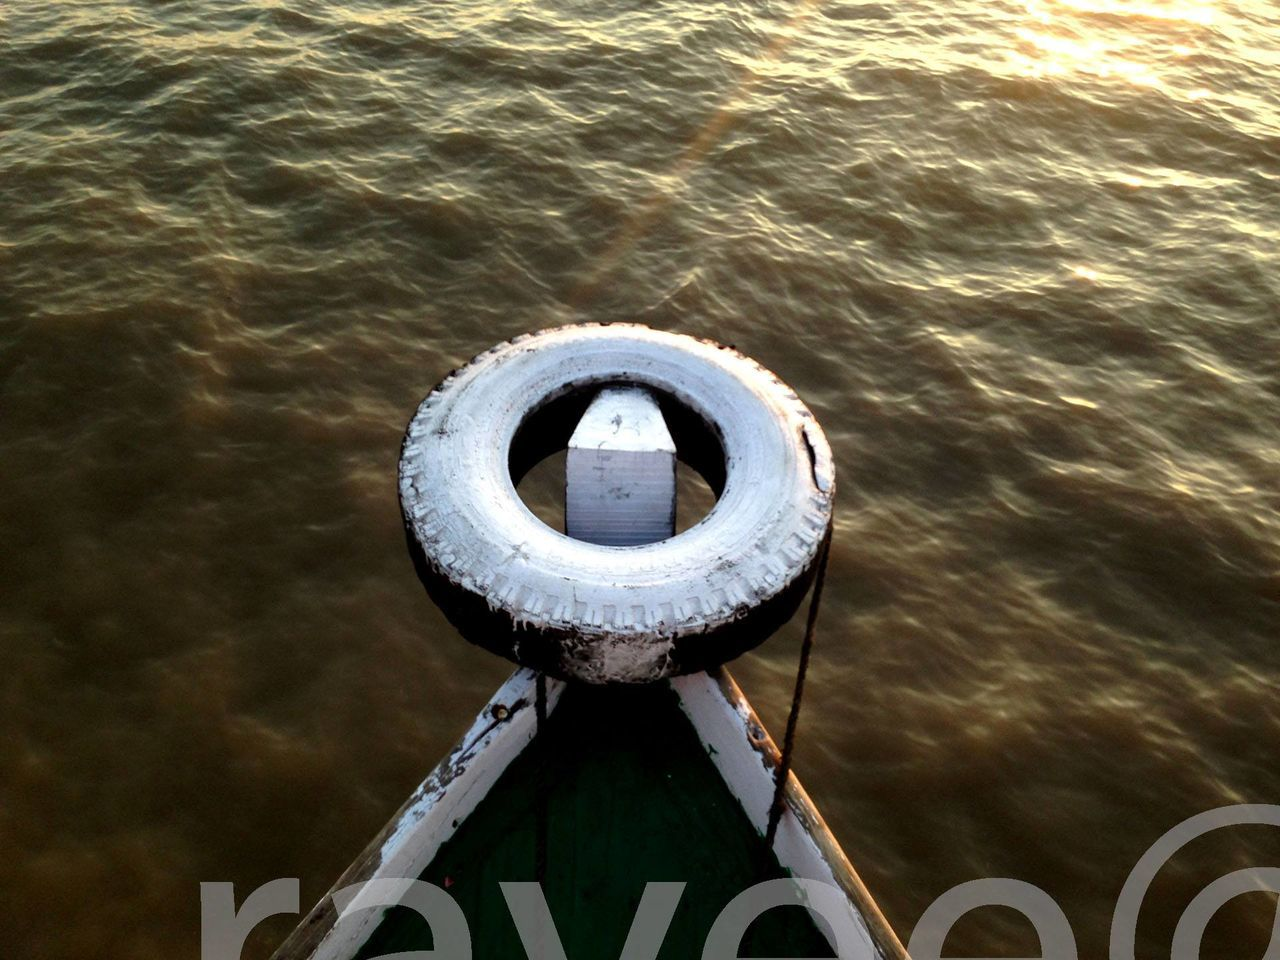 water, nautical vessel, outdoors, no people, transportation, day, high angle view, close-up, mode of transport, nature, sea, cleat